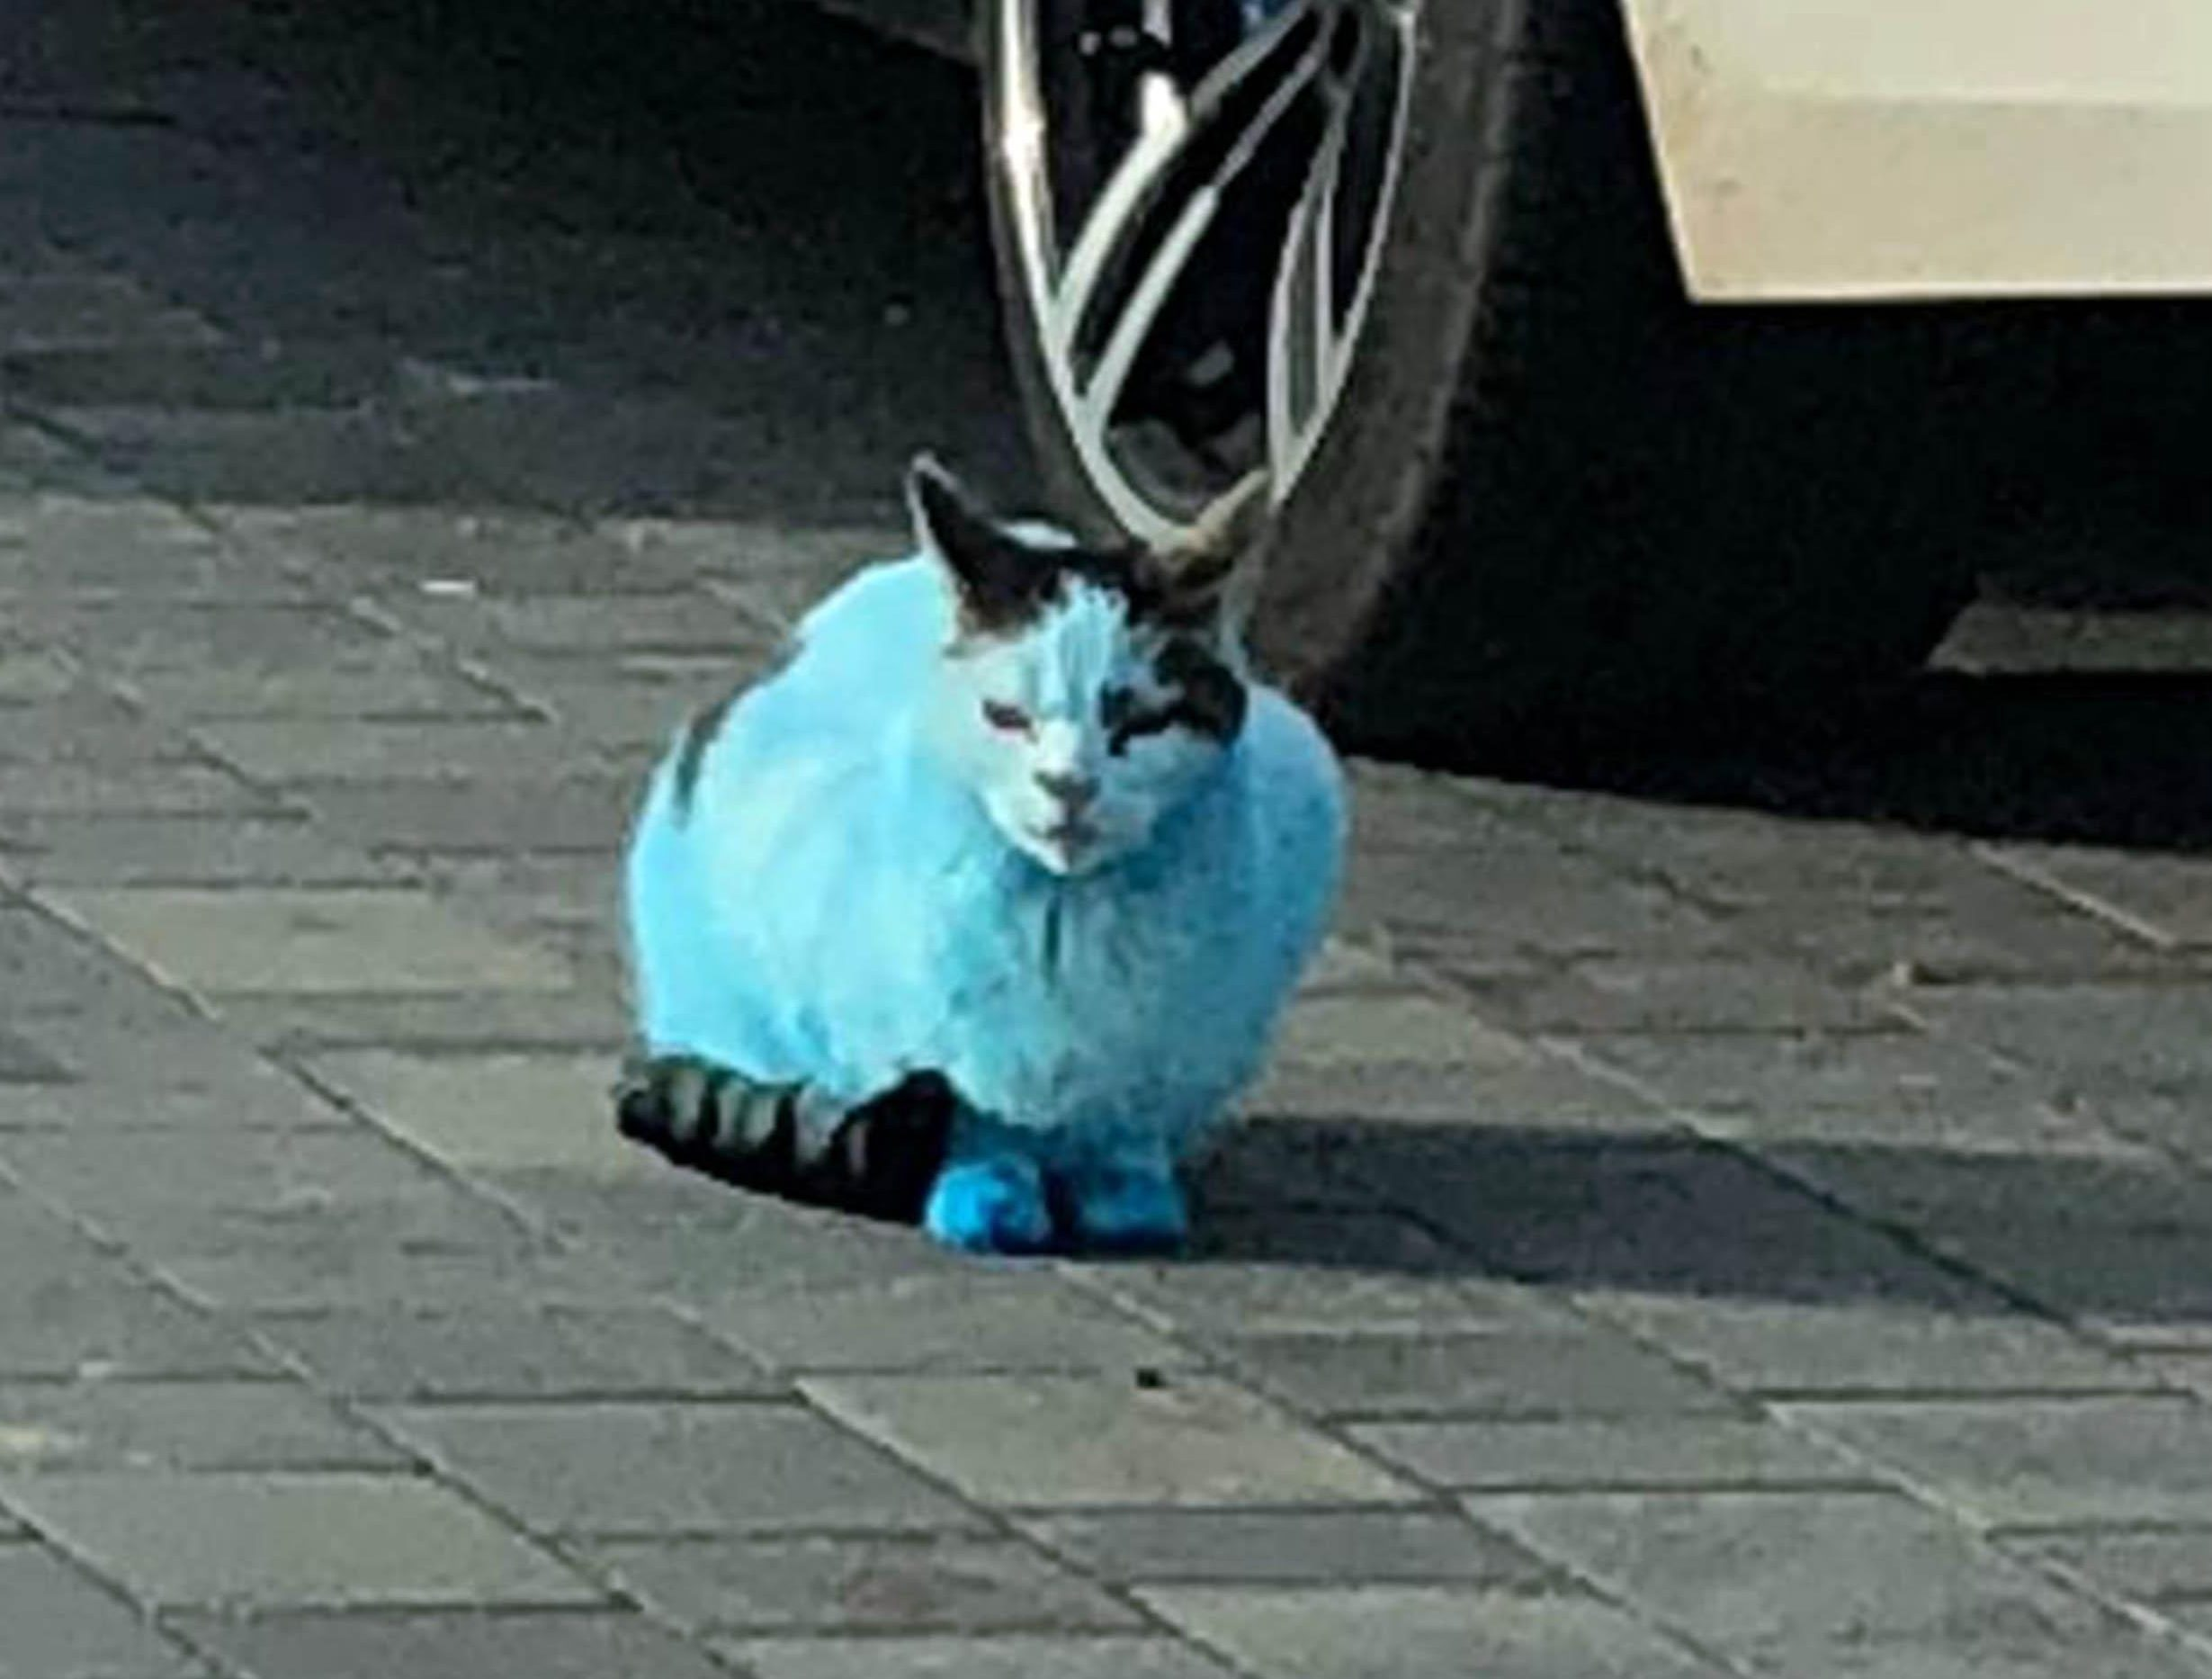 Dozens of pet cats and dogs hit by cloud of blue dye after ink cartridge explodes in fire